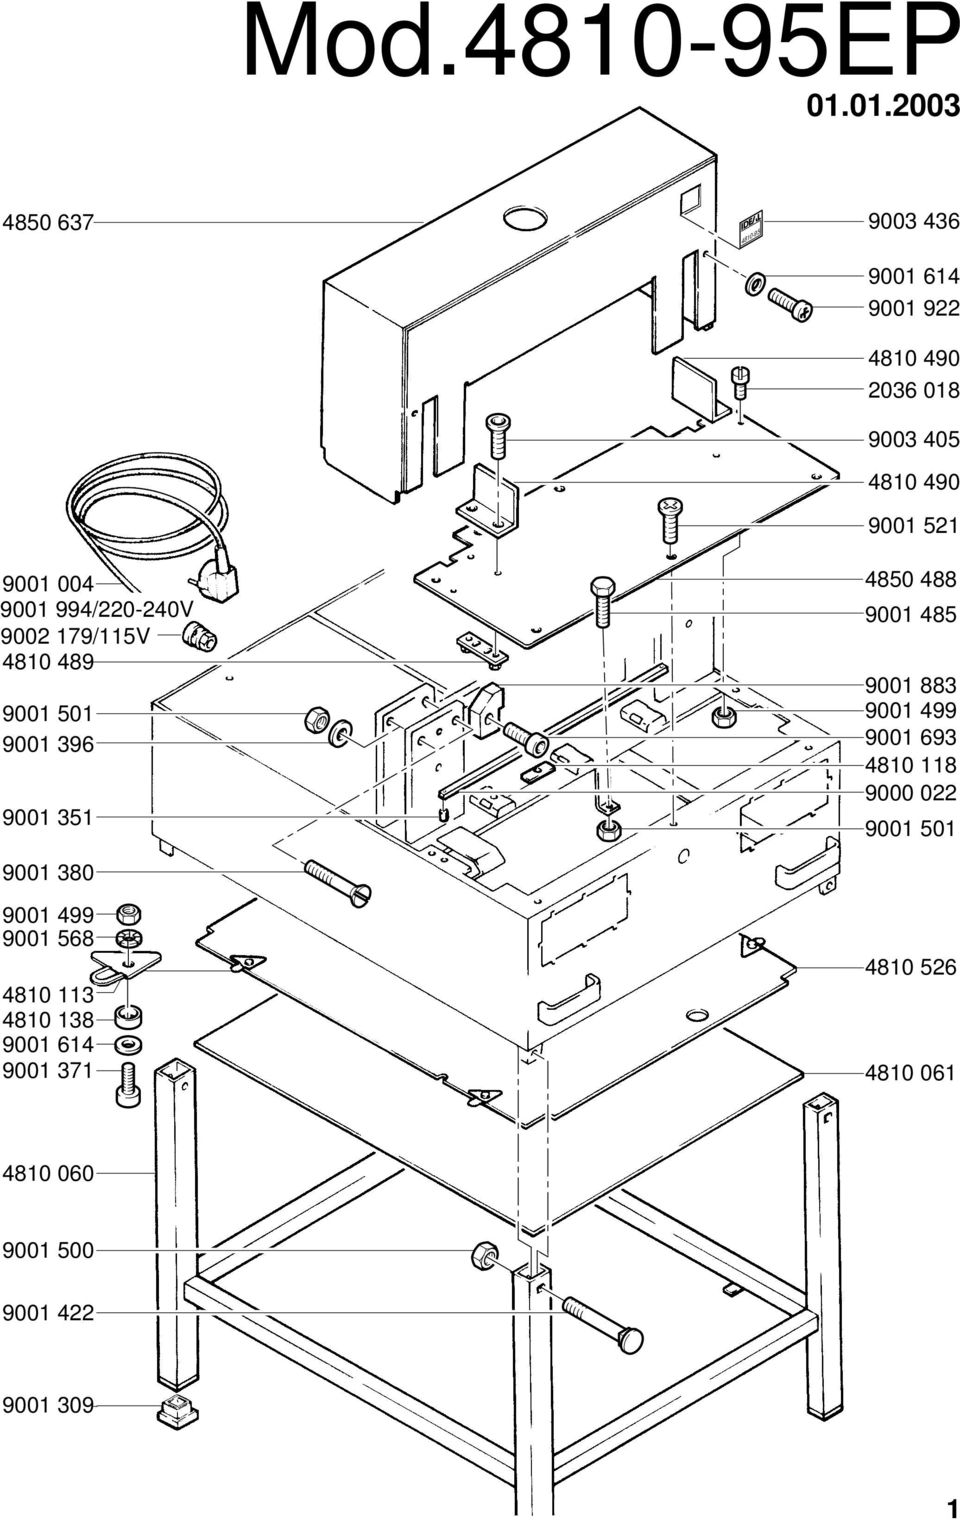 1968 Ford Wiring Diagram Tail Lights moreover Telephone Handset Wiring Diagram likewise Fuse Box Besides Towbar Wiring Diagram 7 Pin On Layout For moreover For Remote Start Wiring Diagram For Dodge besides 2004 Pt Cruiser Pcm Location. on ford trailer connector wiring diagram